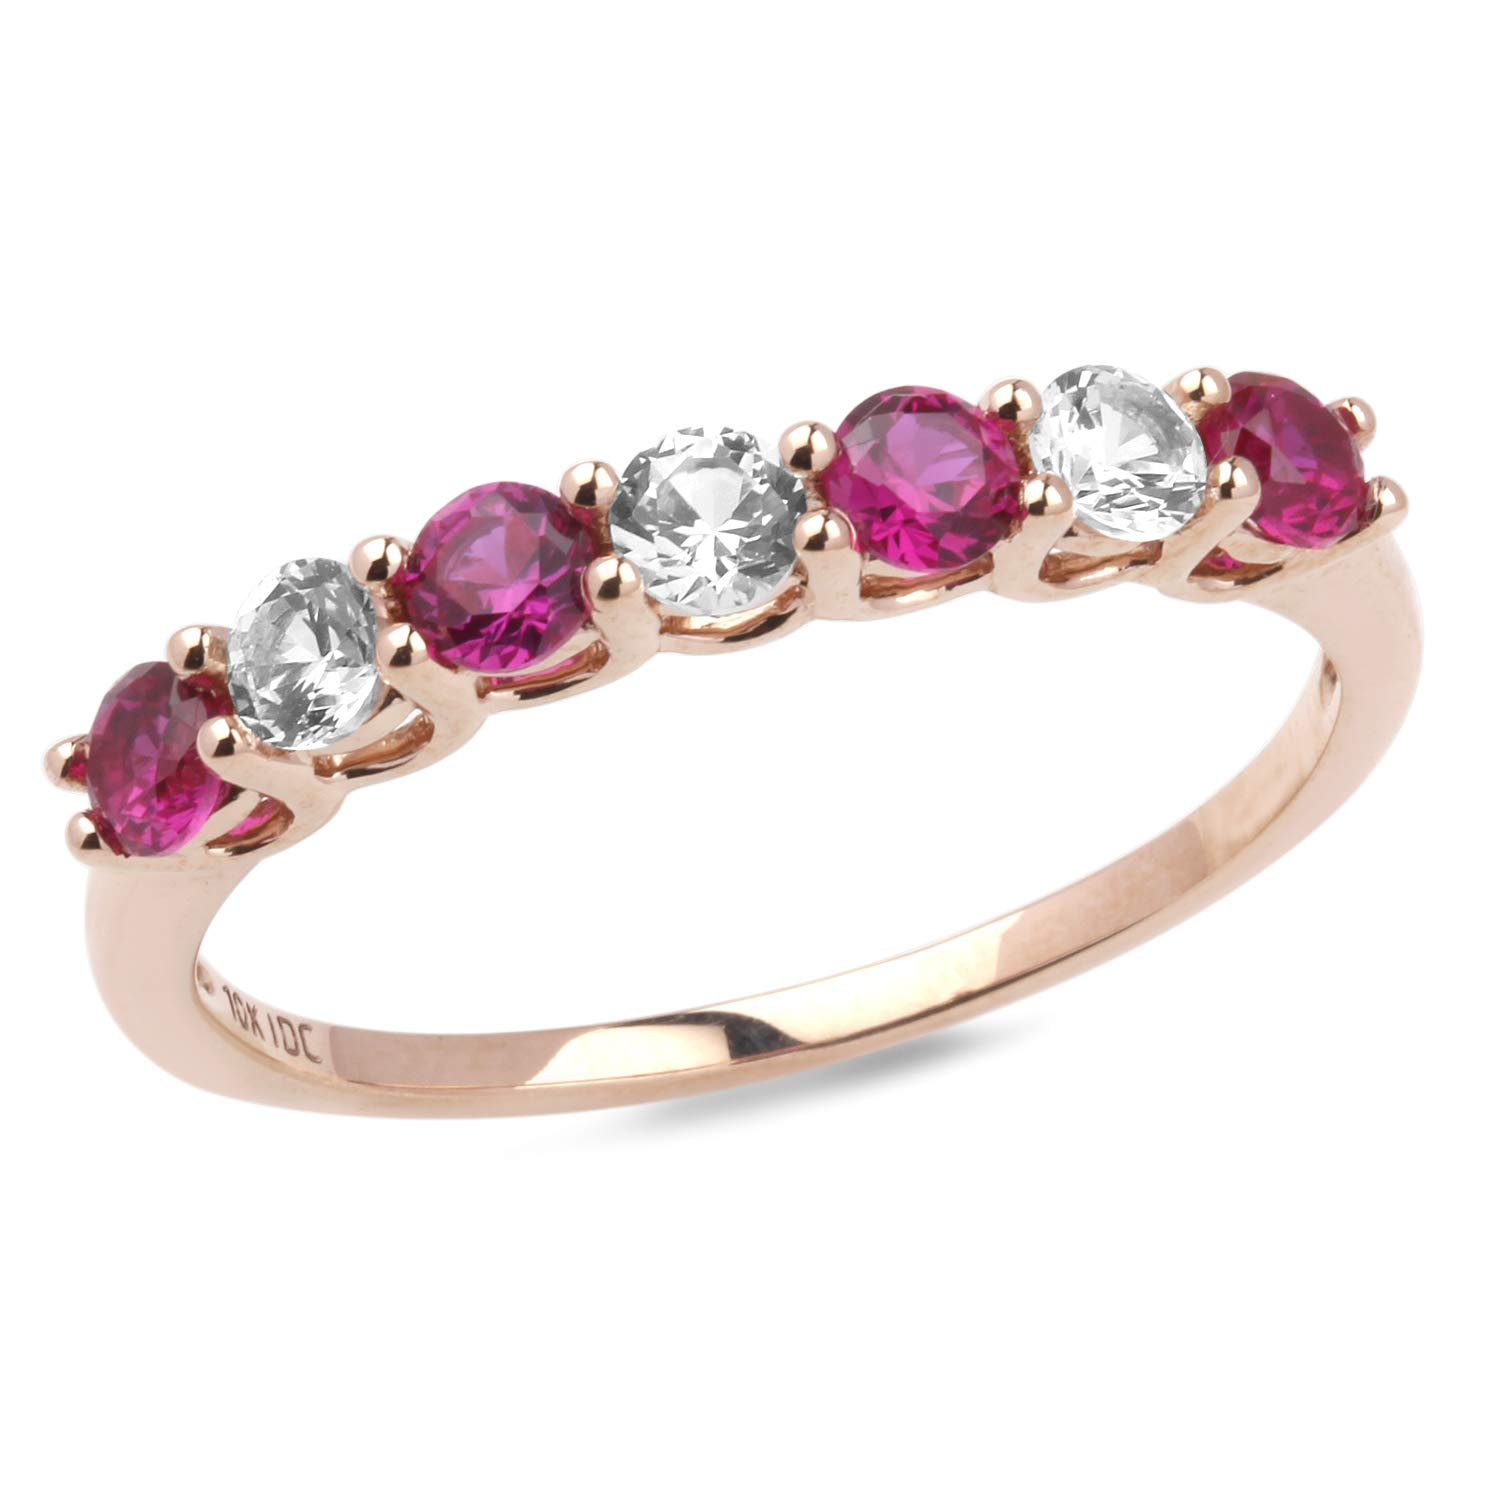 Lab created White Sapphire and Ruby Band in 10k Rose Gold